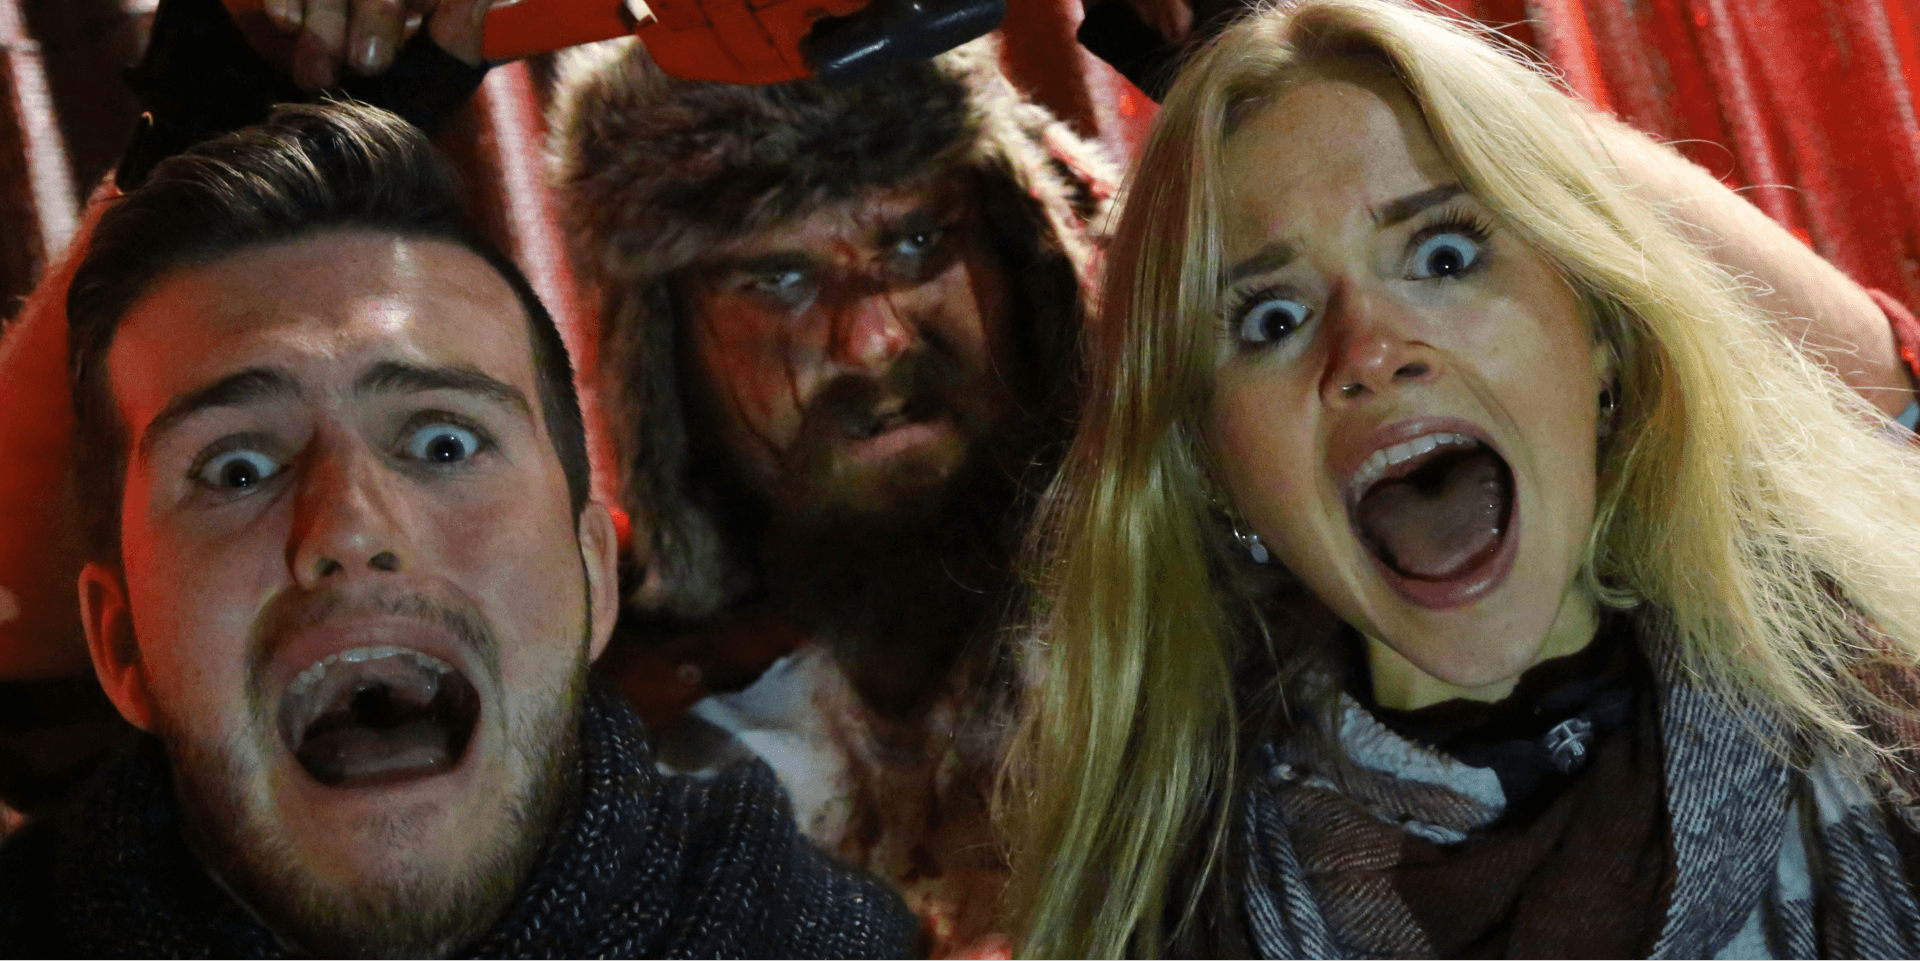 Fright Nights Halloween Discount Tickets